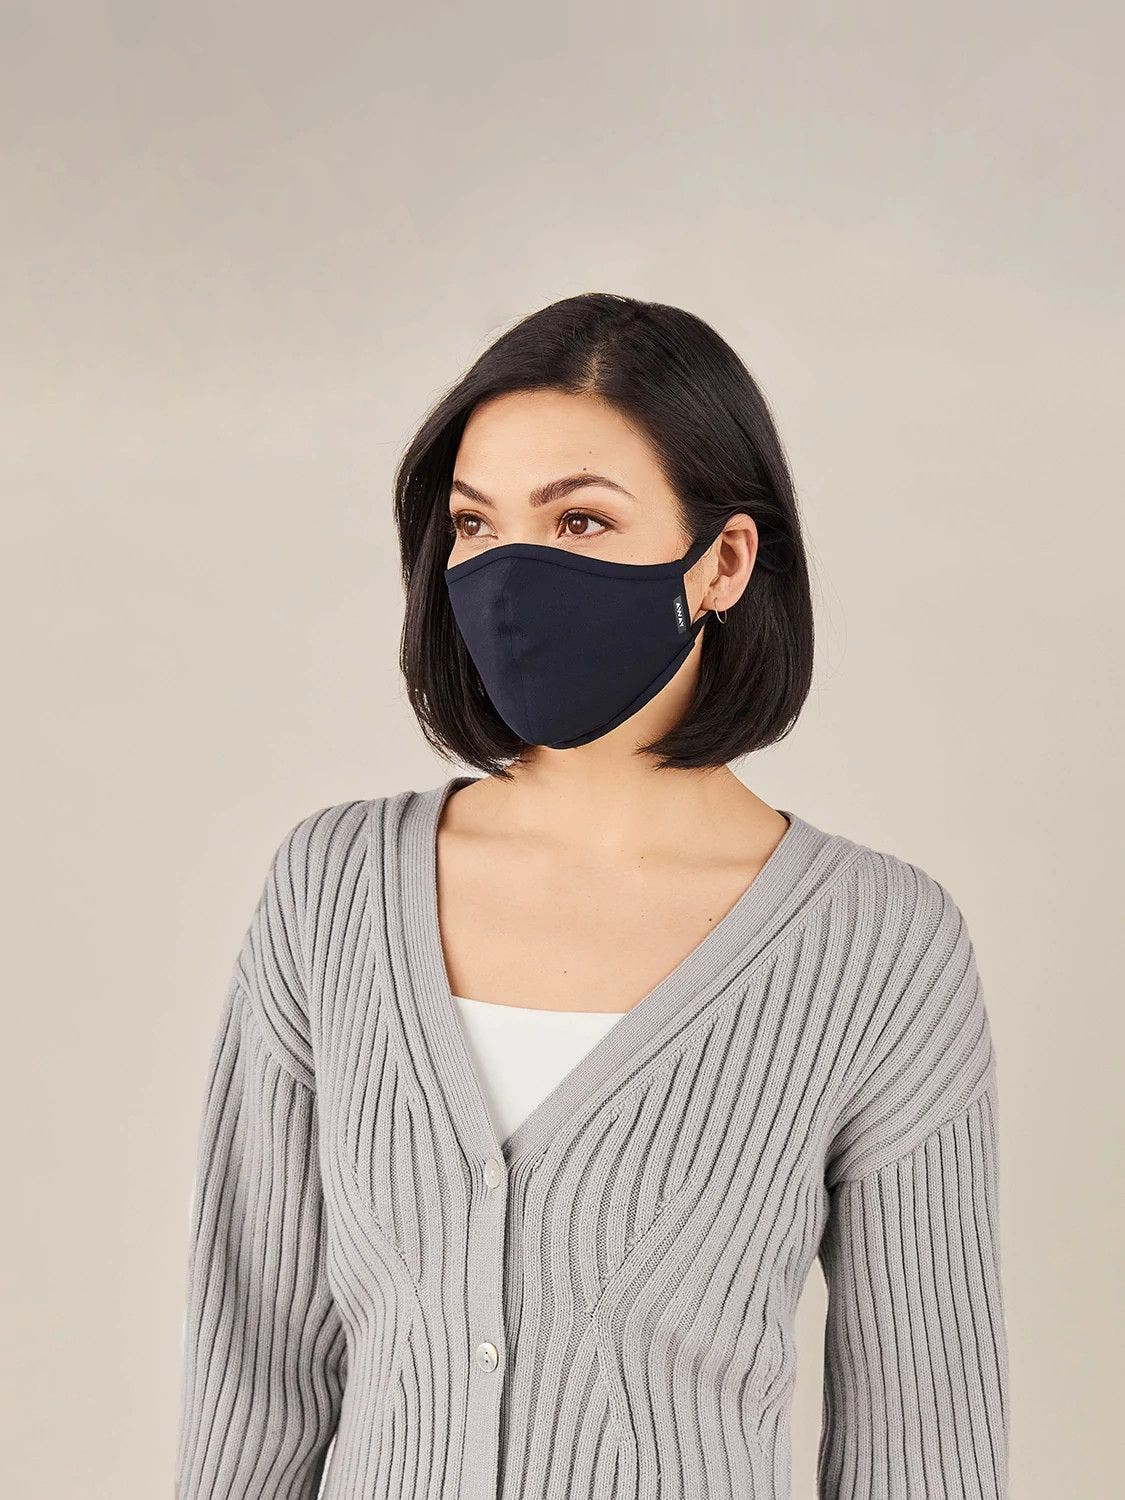 A woman in a grey sweater wearing a navy reusable cloth face mask.